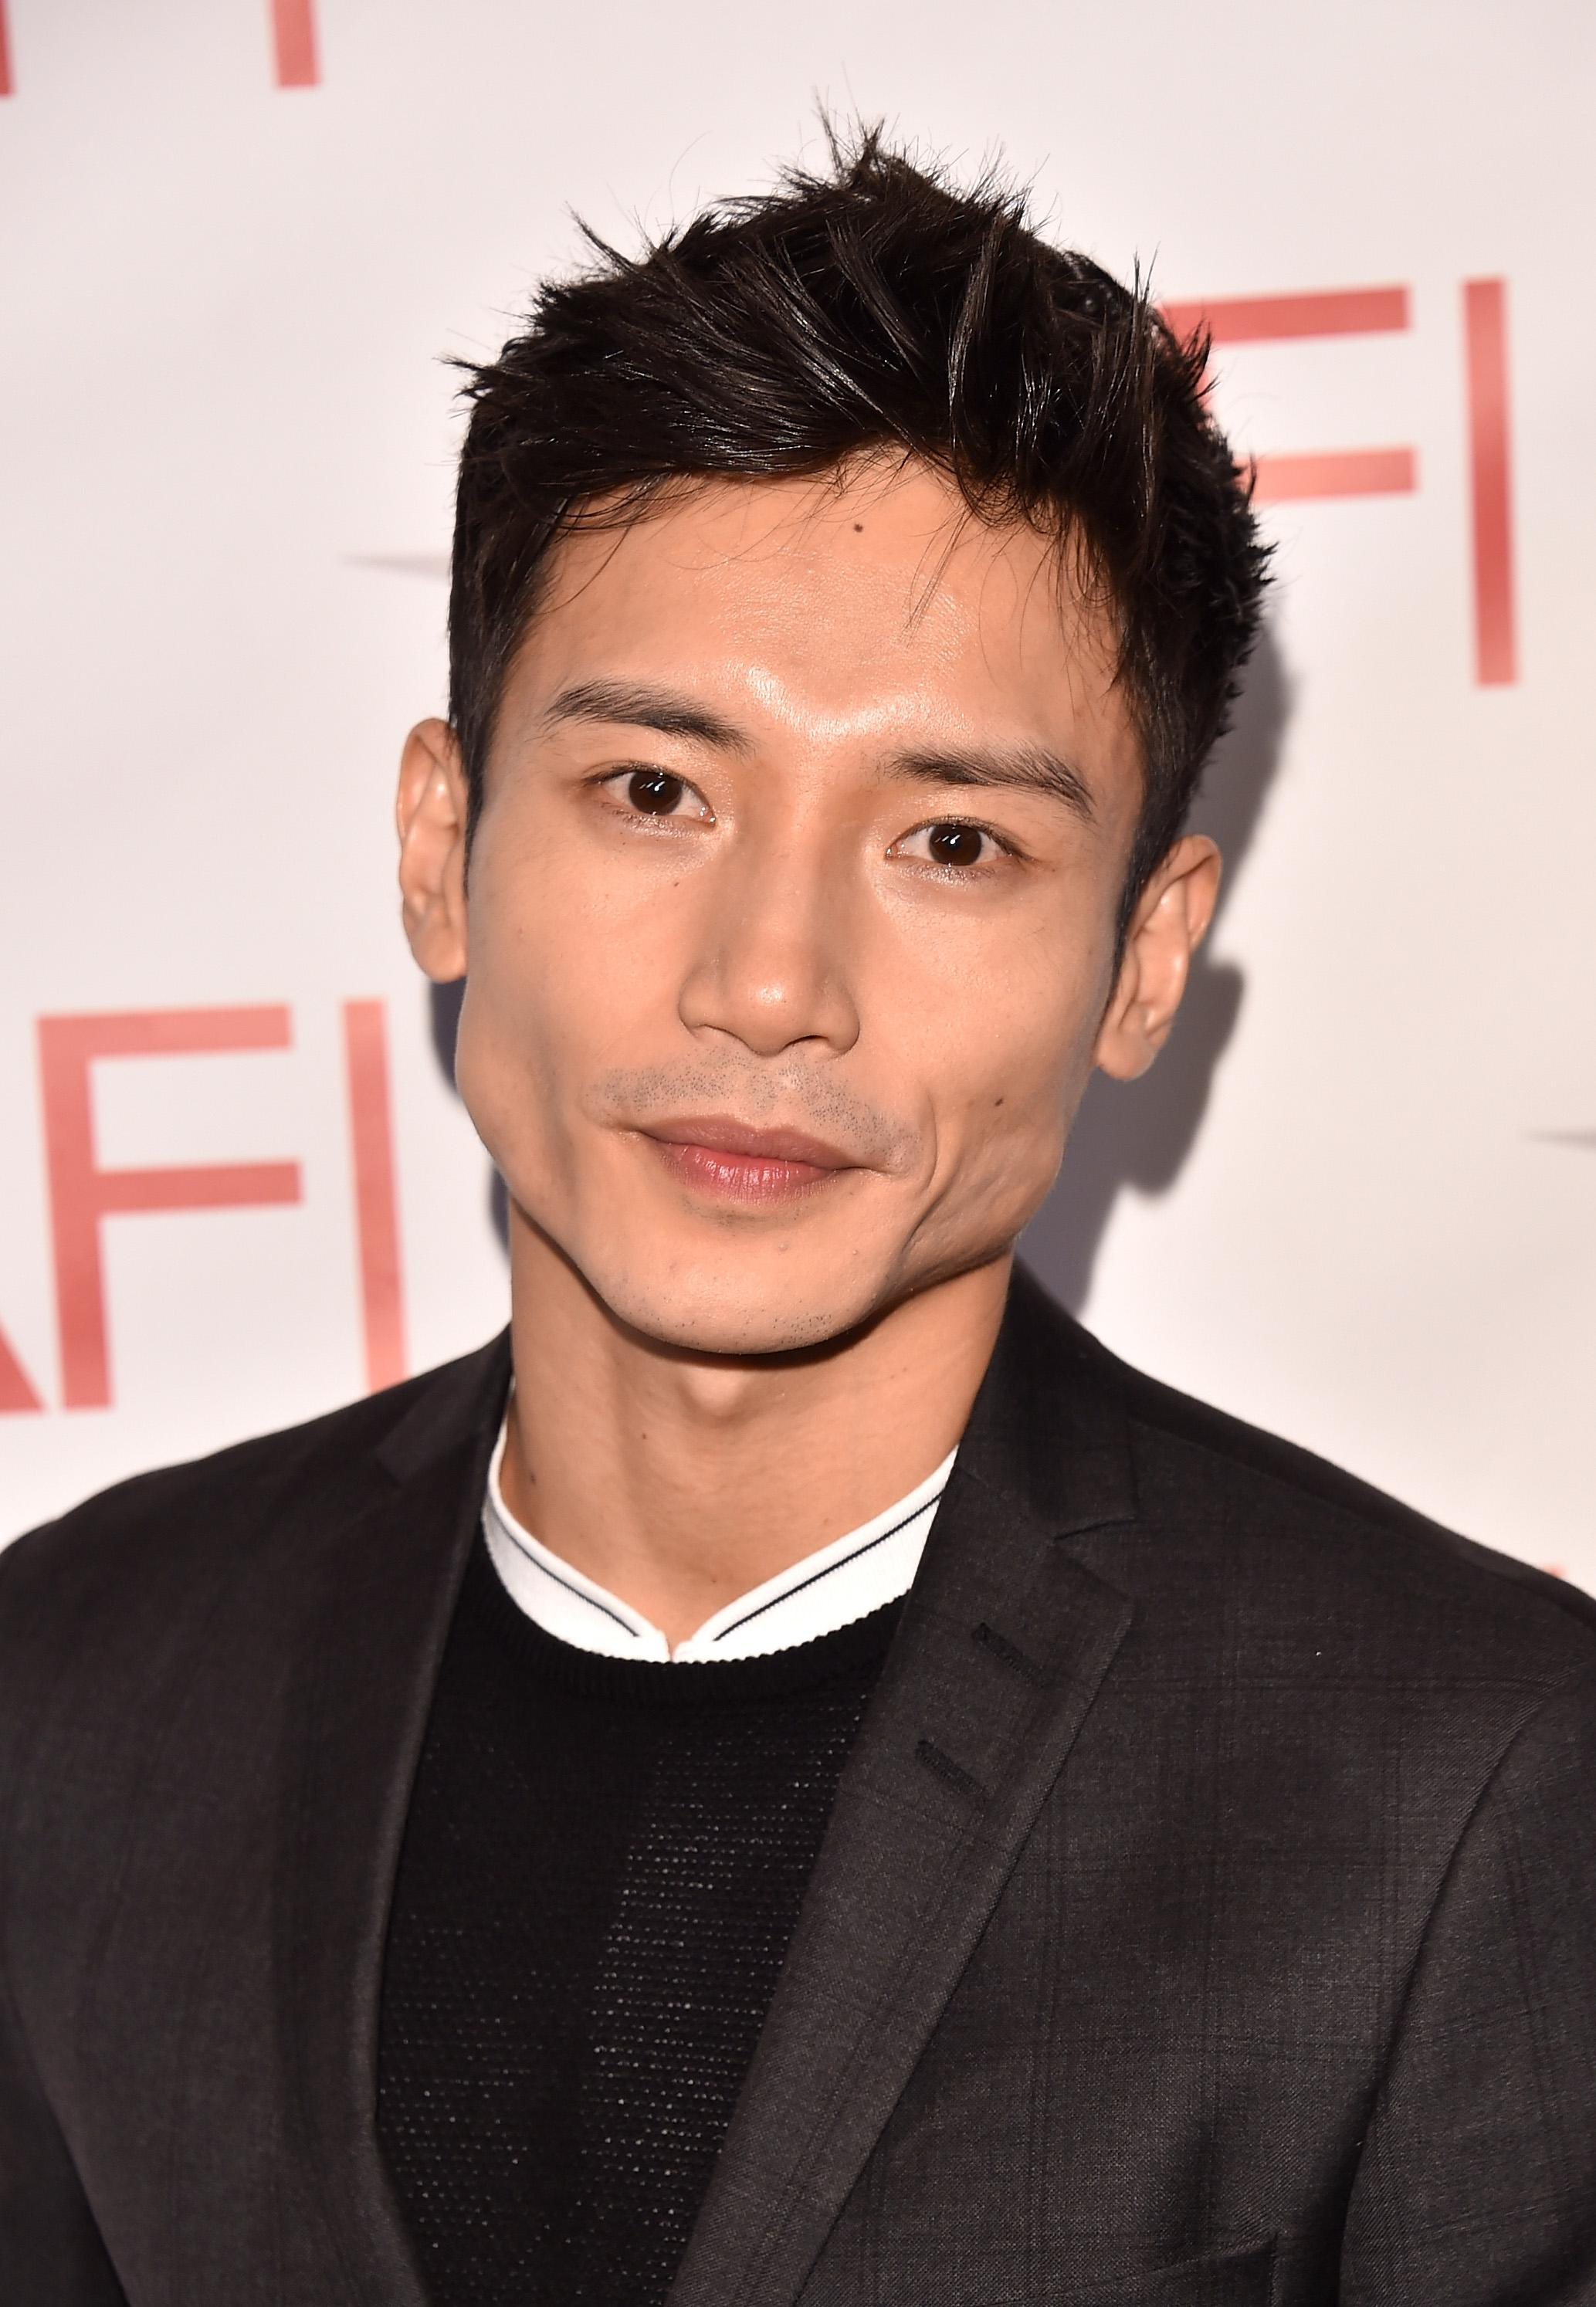 LOS ANGELES, CA - JANUARY 05:  Manny Jacinto attends the 18th Annual AFI Awards at Four Seasons Hotel Los Angeles at Beverly Hills on January 5, 2018 in Los Angeles, California.  (Photo by Alberto E. Rodriguez/Getty Images)